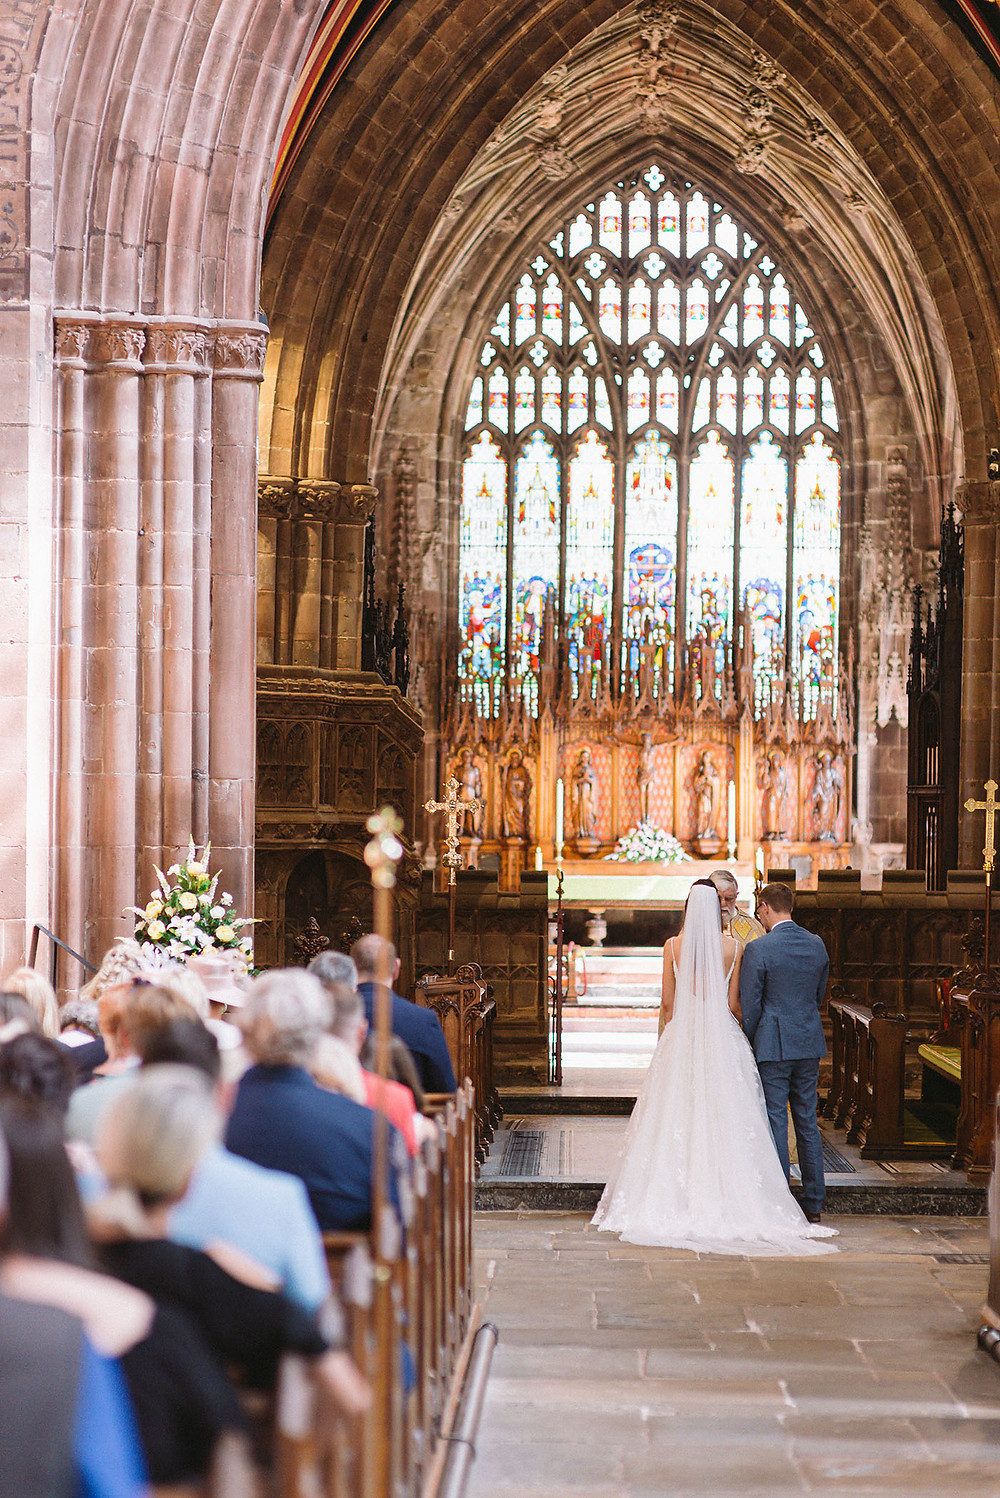 Epps Photography, Dorfold Hall wedding photographer, Dorfold hall wedding Photography,  wedding photographer nantwich, Cheshire wedding photography, North West Wedding Photography,